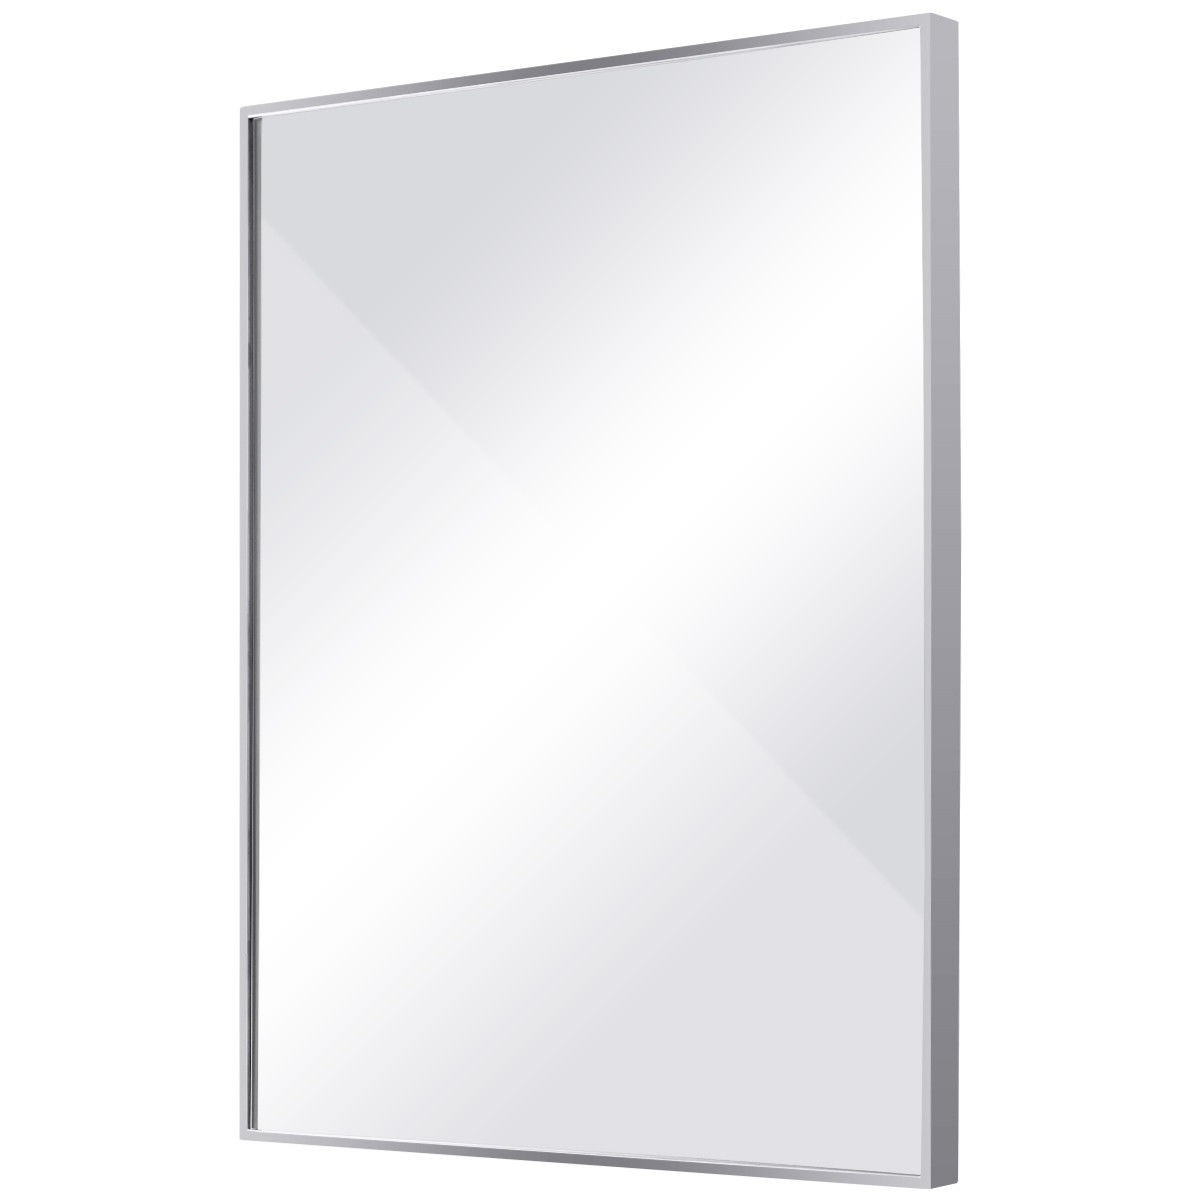 Stainless Steel Frame Floating Glass Rectangular Wall Mirror Within Fashionable Stainless Steel Wall Mirrors (View 8 of 20)